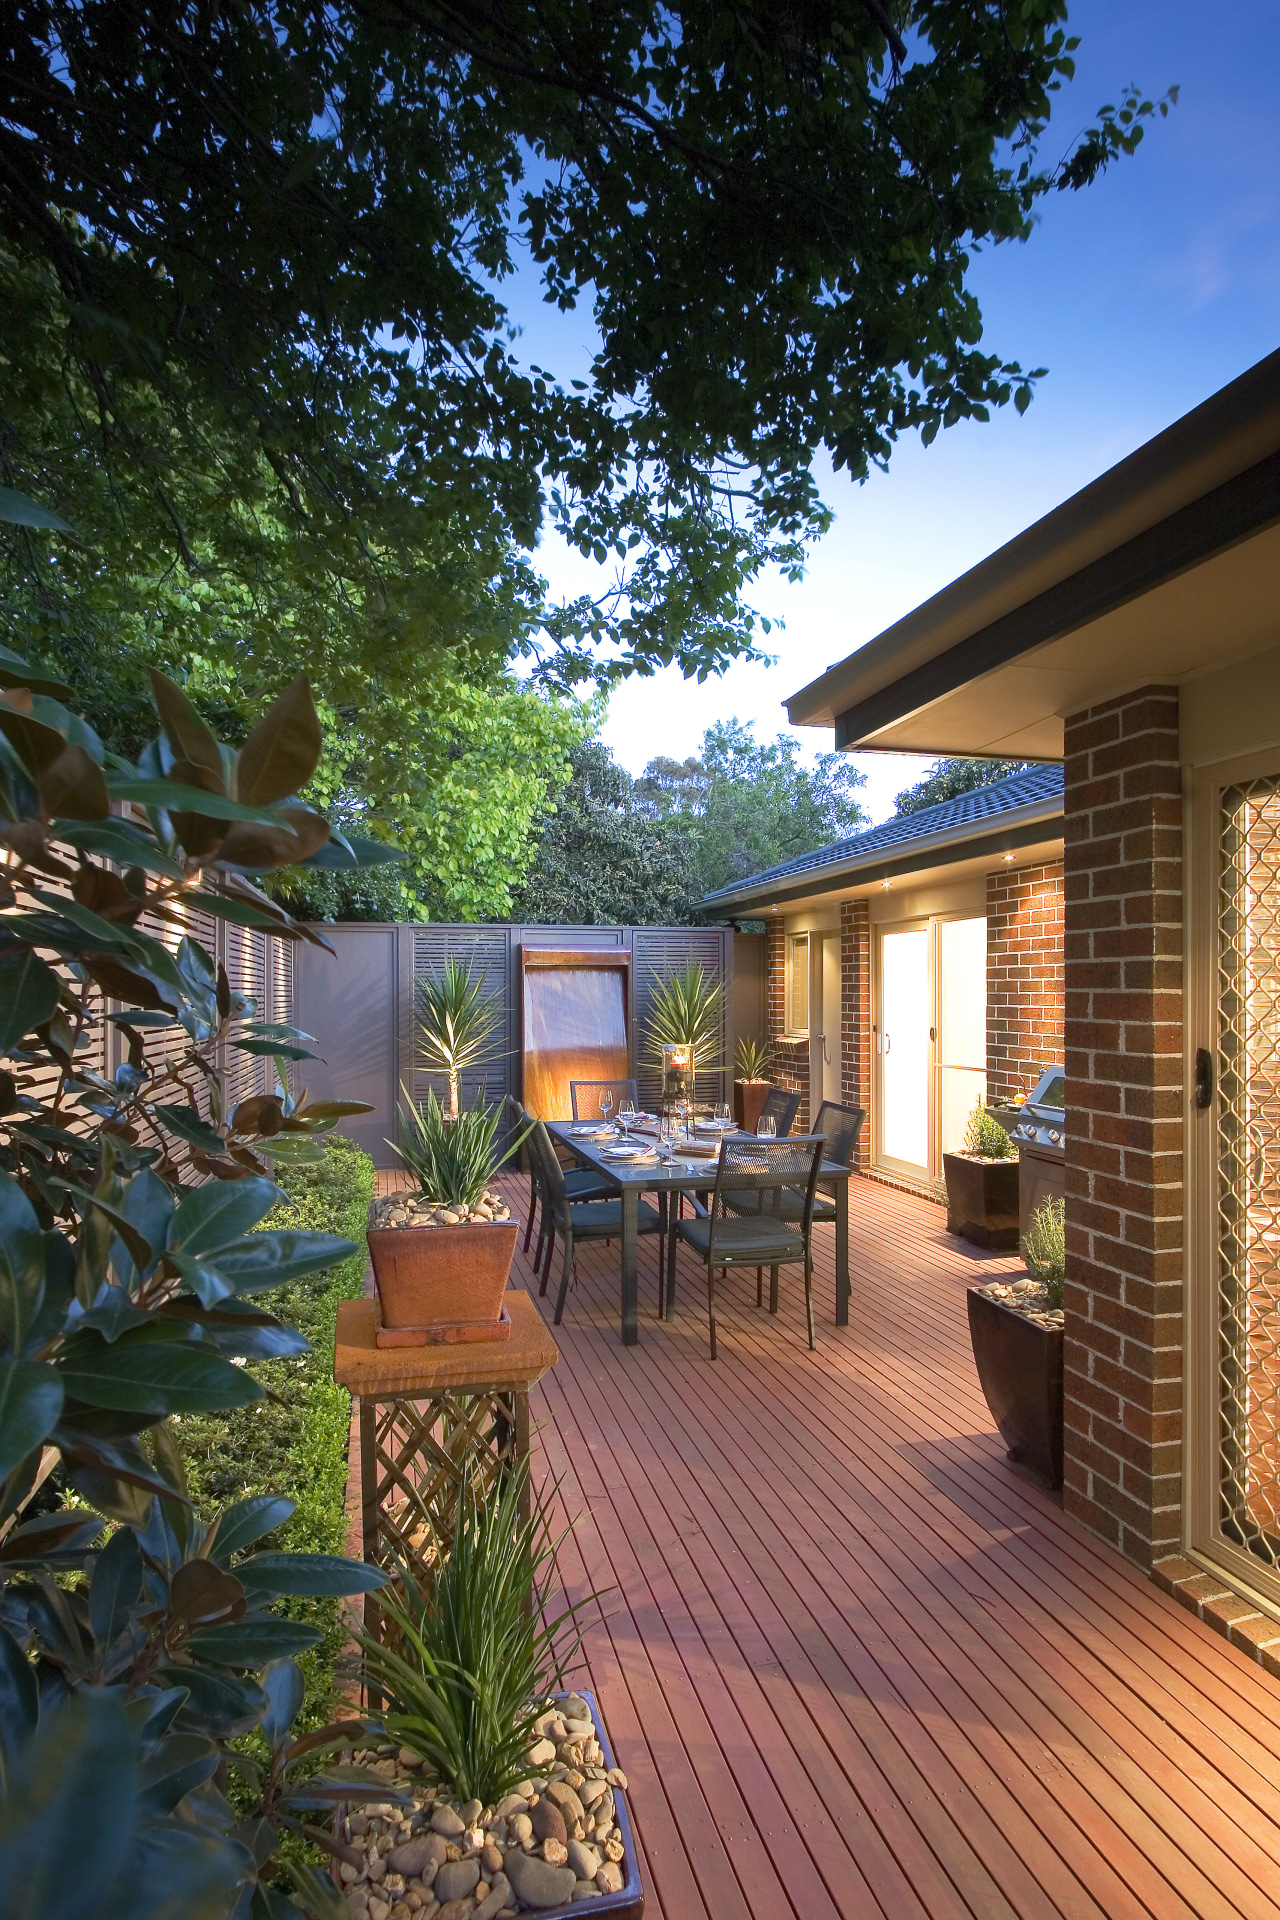 A view of this out door entertainment area backyard, courtyard, deck, estate, home, house, landscaping, outdoor structure, patio, property, real estate, yard